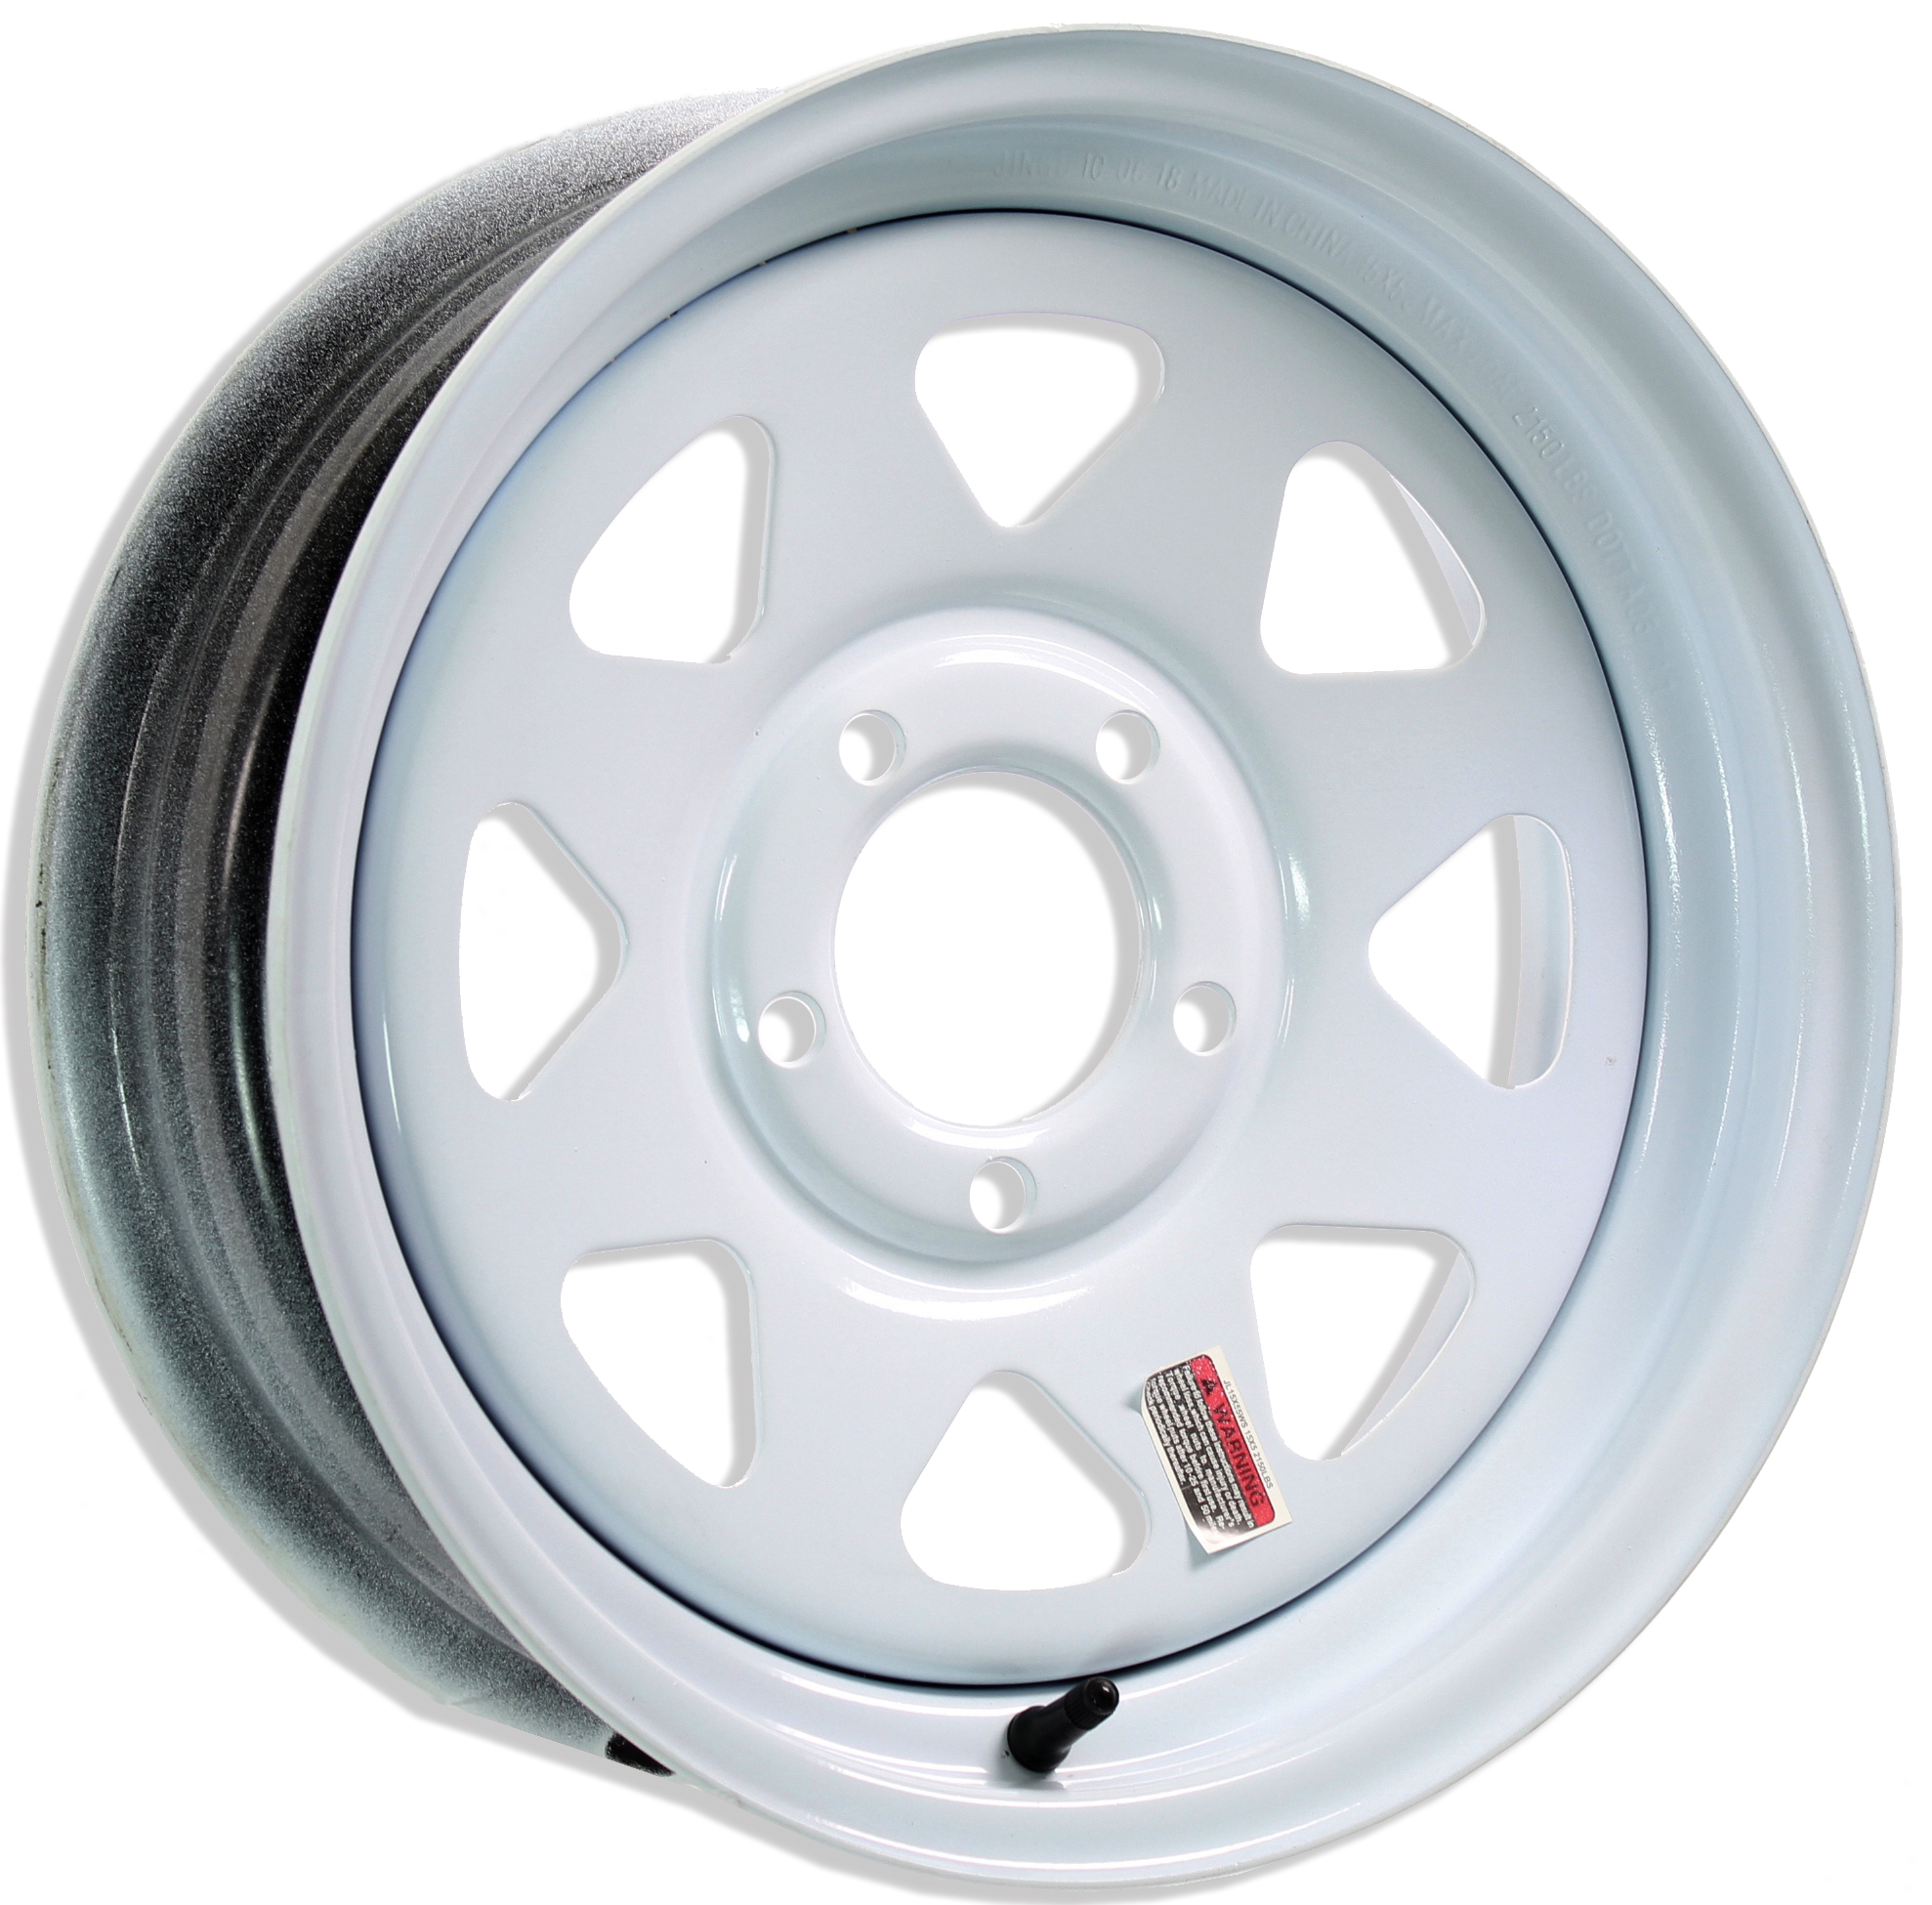 15x5 5-Lug White Spoke Steel Trailer Wheel Image